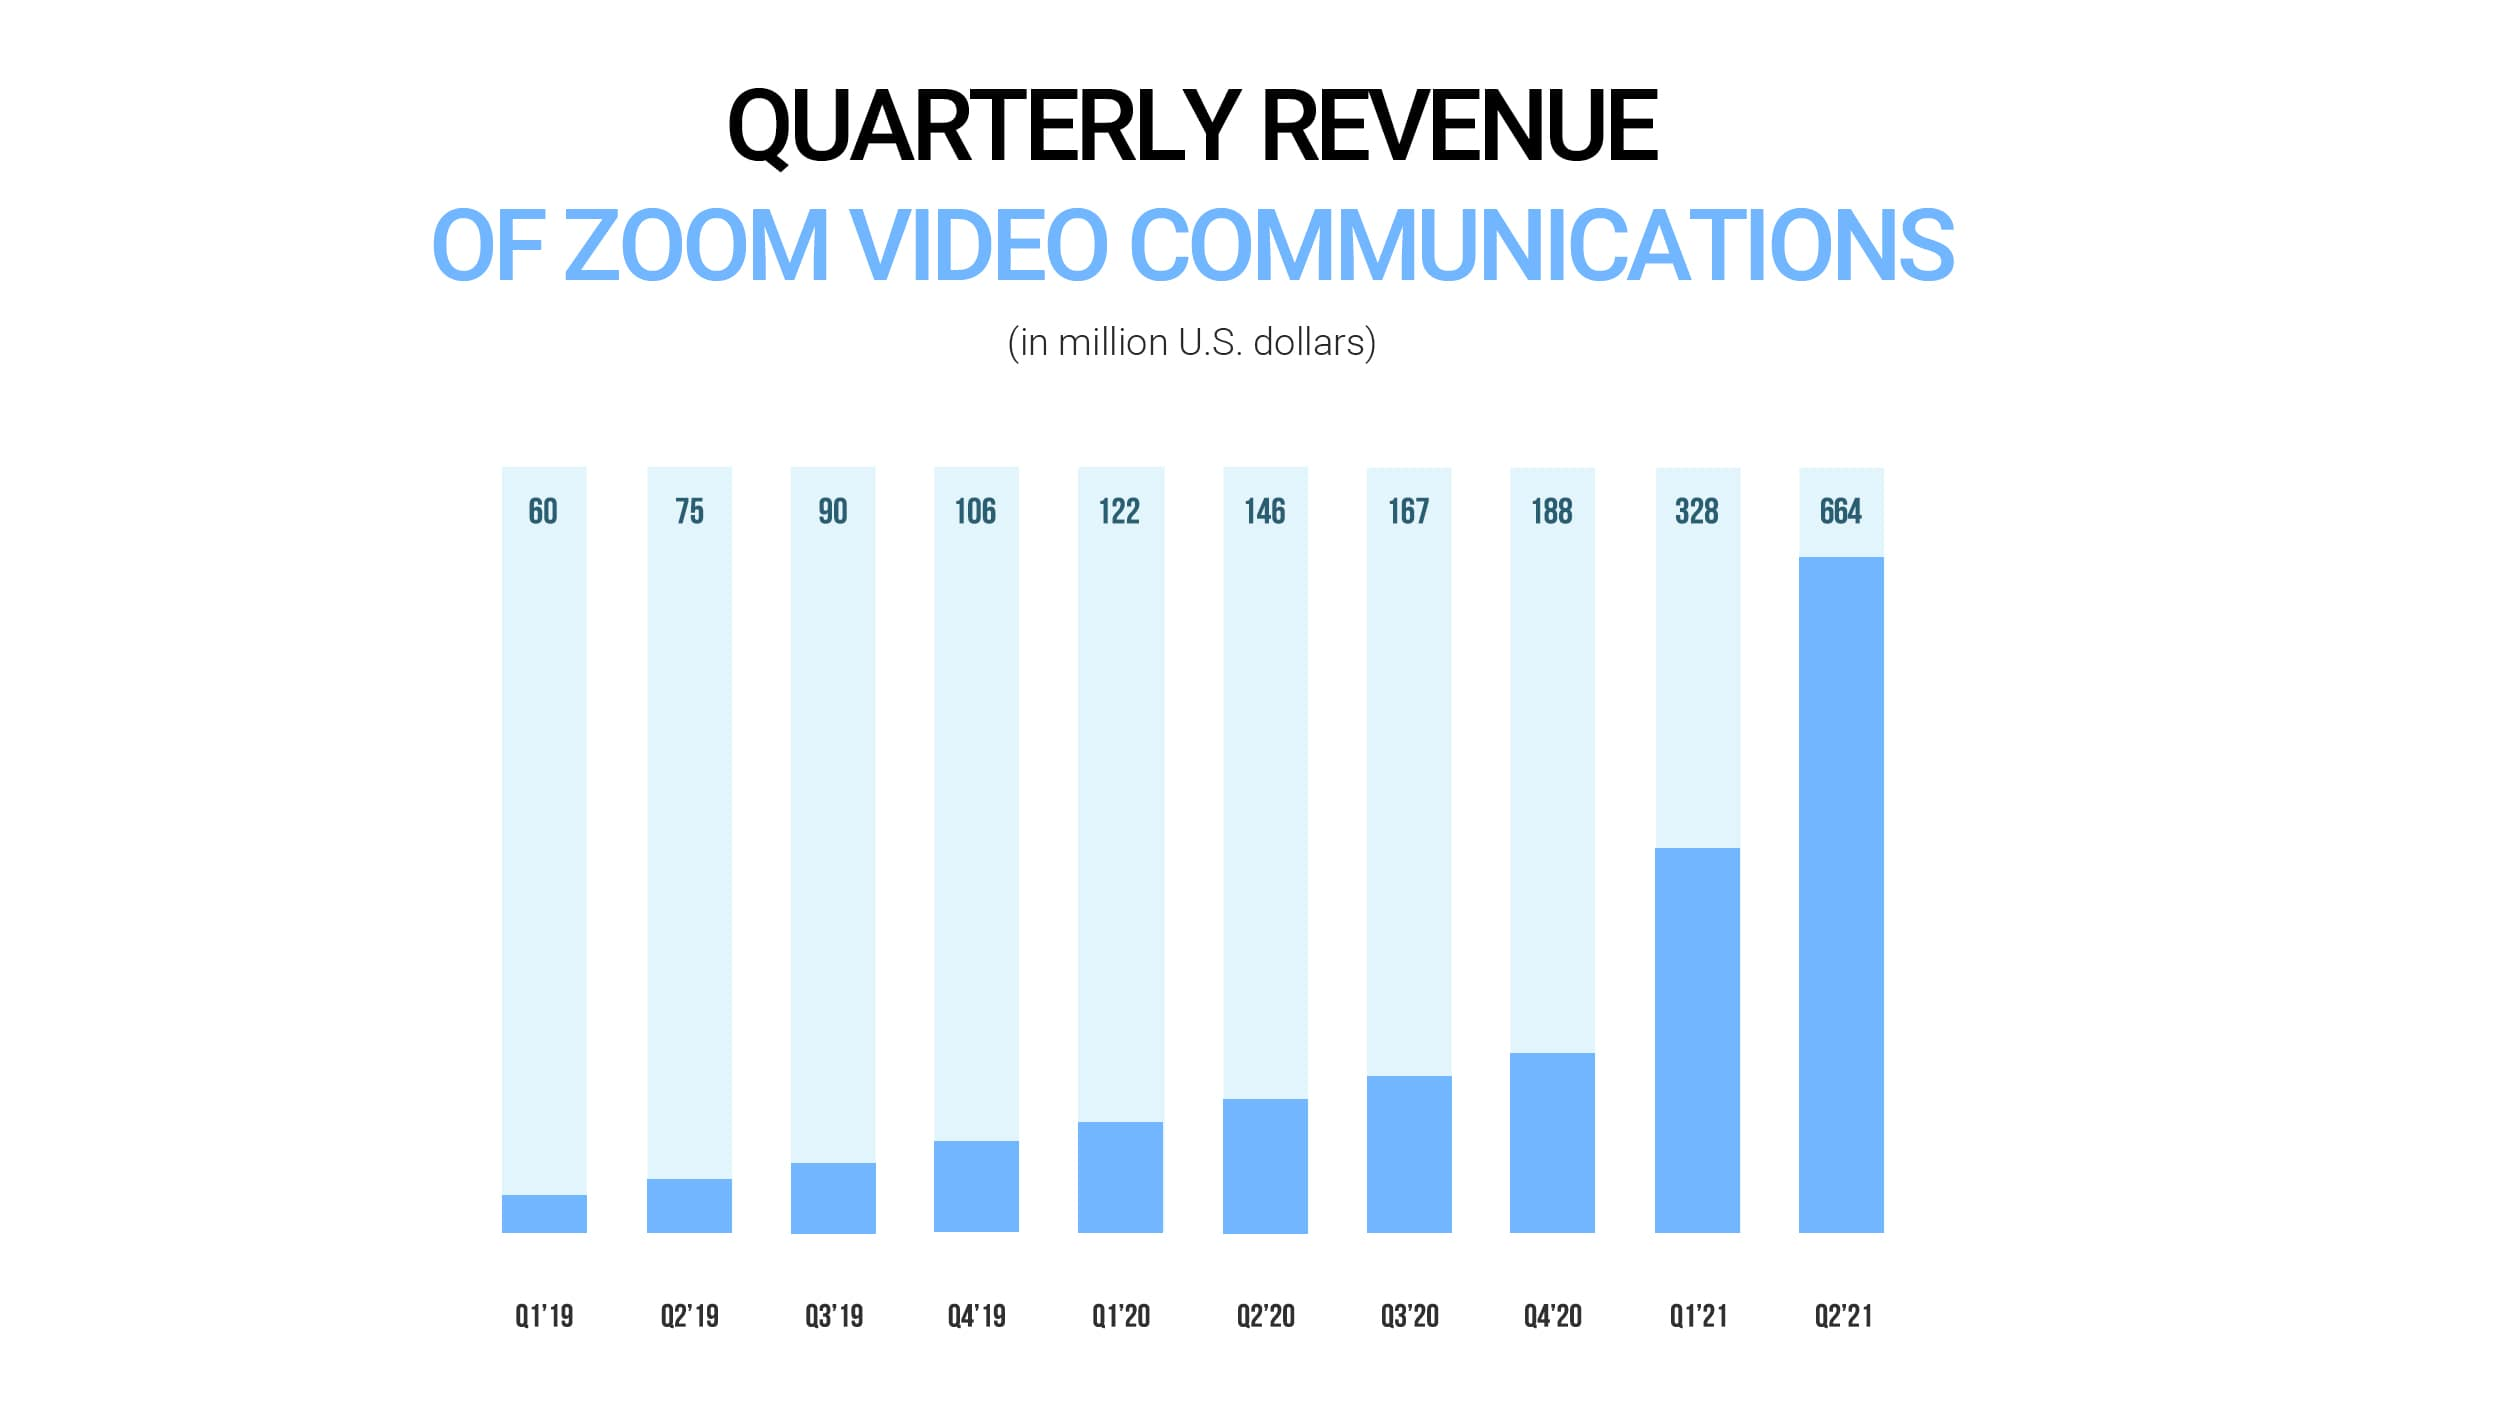 Quarterly revenue of Zoom video communications